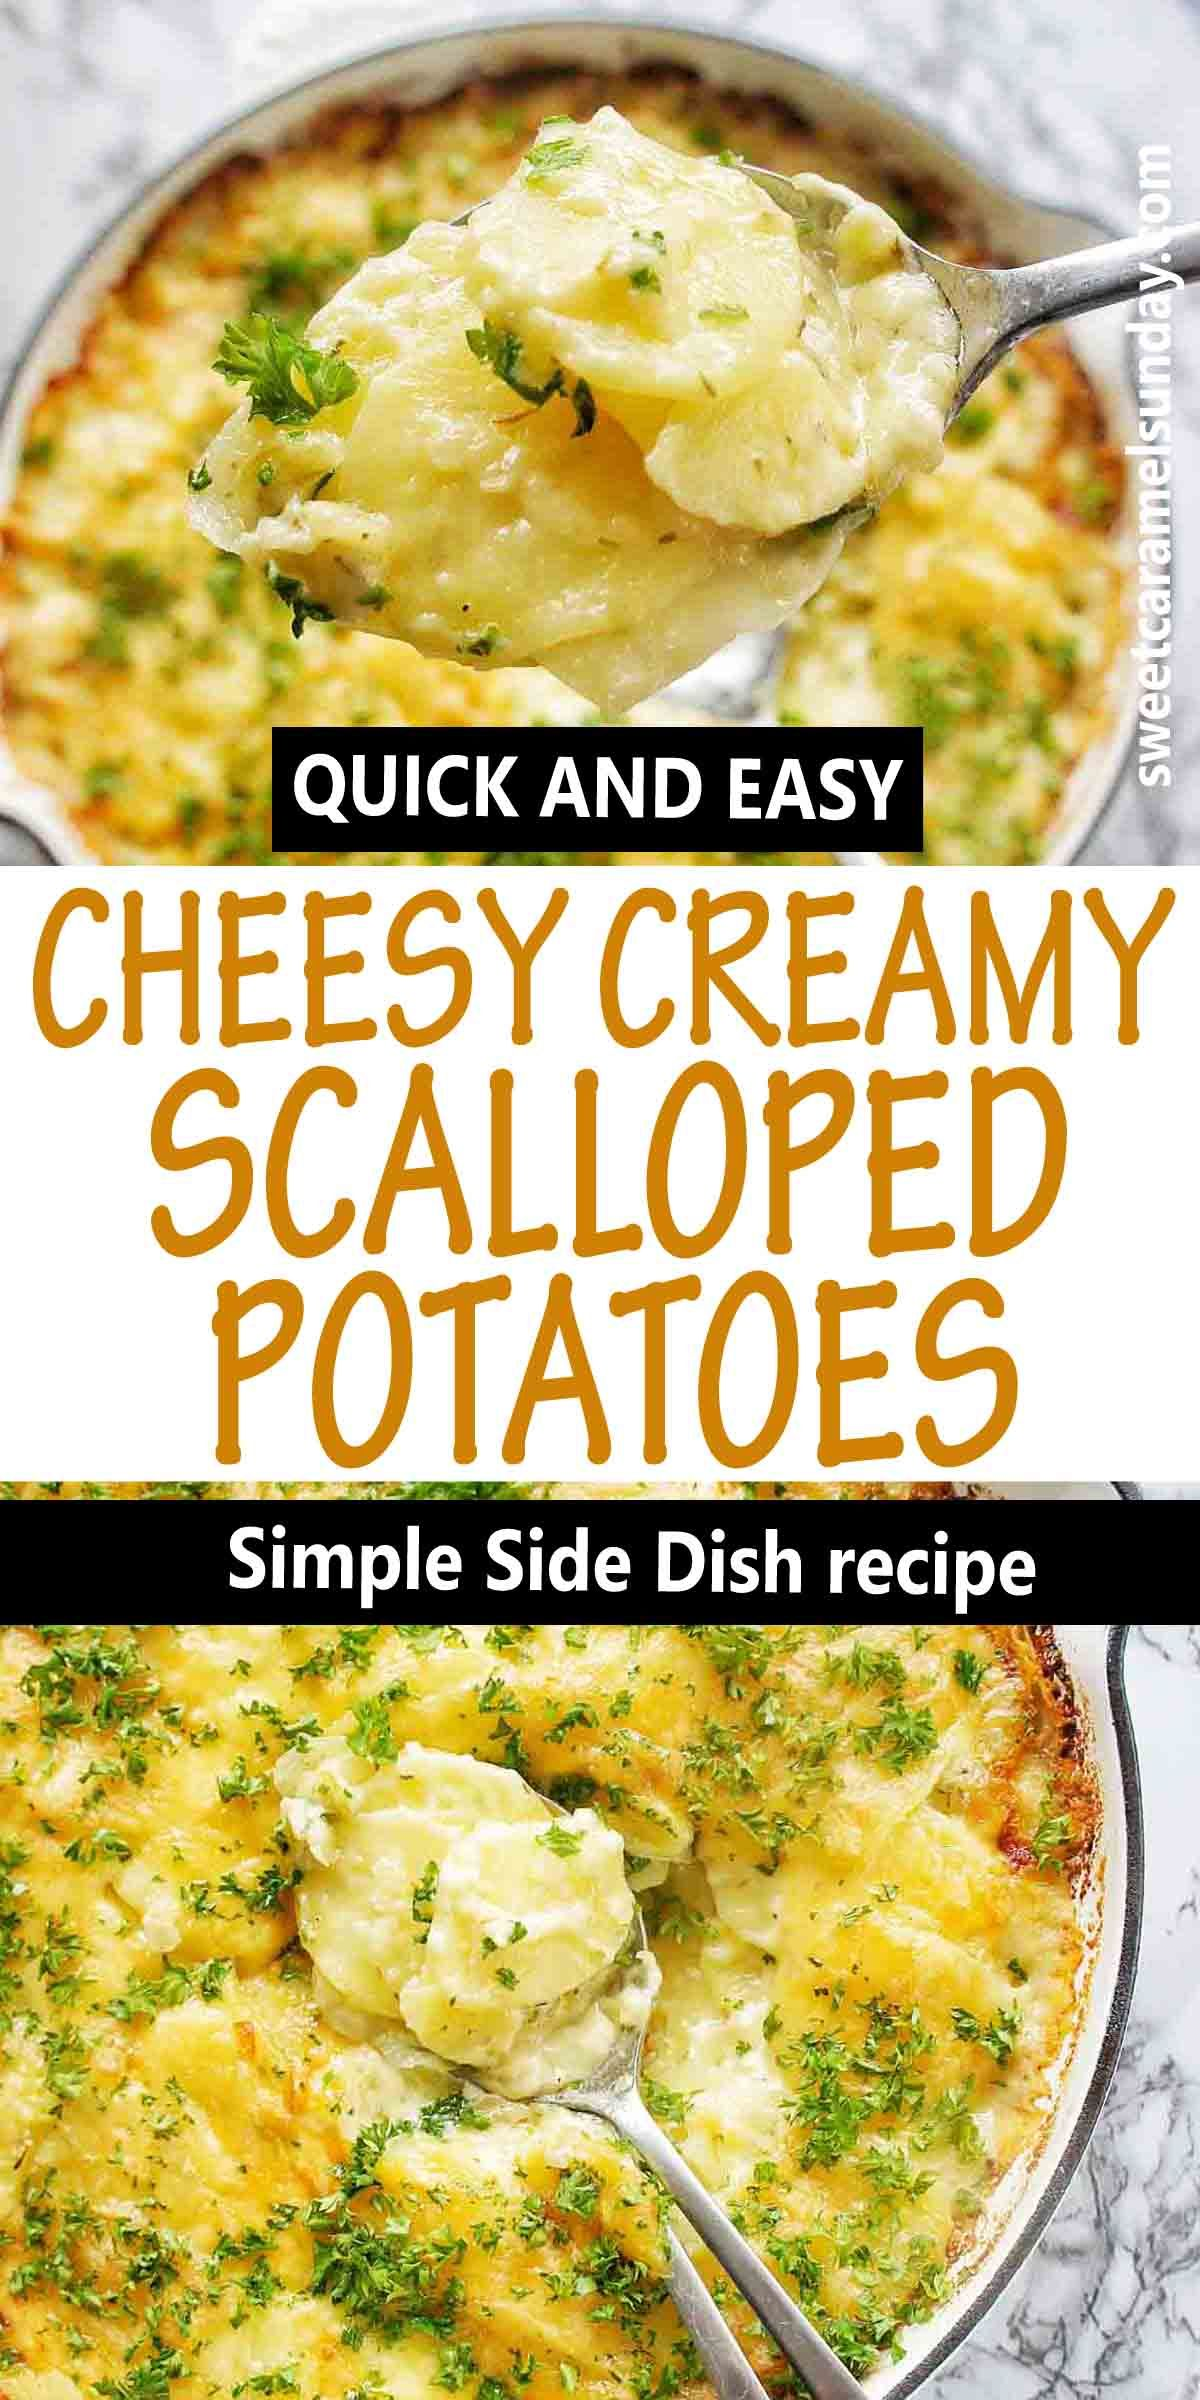 Easy Classic Scalloped Potatoes Recipe In 2020 Side Dish Recipes Easy Easy Healthy Lunch Recipes Healthy Recipes Easy Snacks